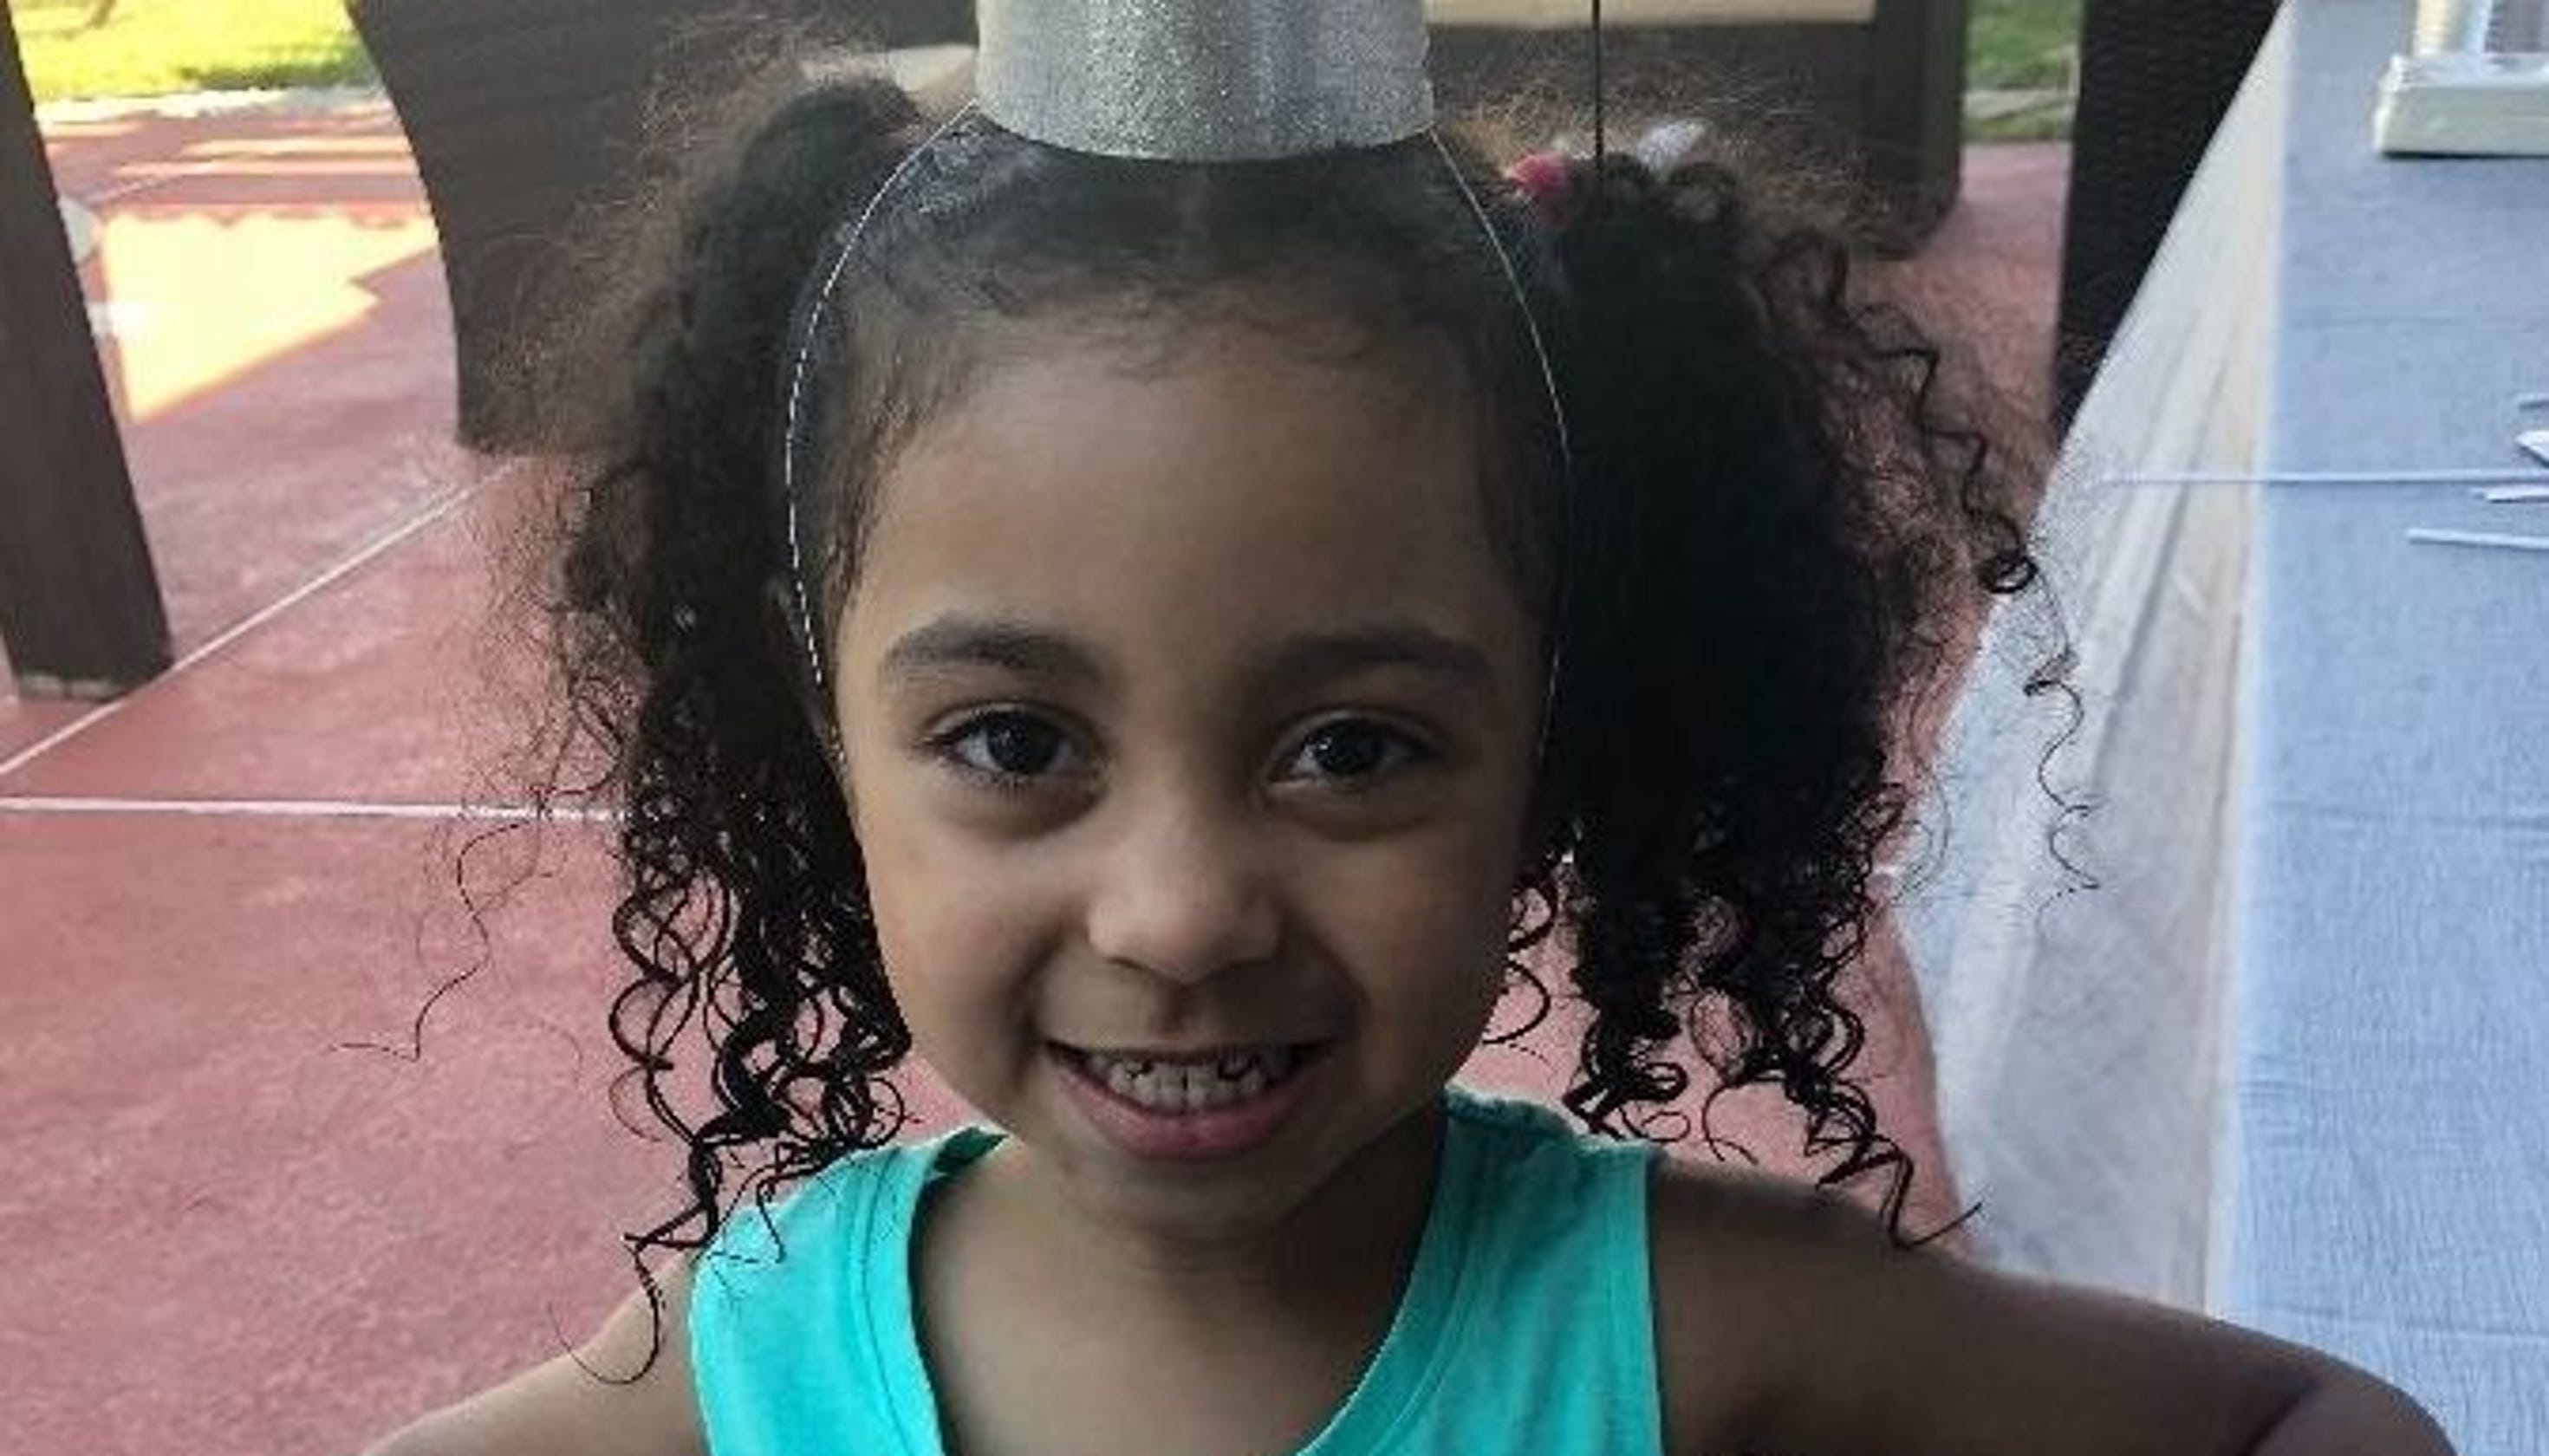 Dad rages after 4-year-old daughter dies of flu complications